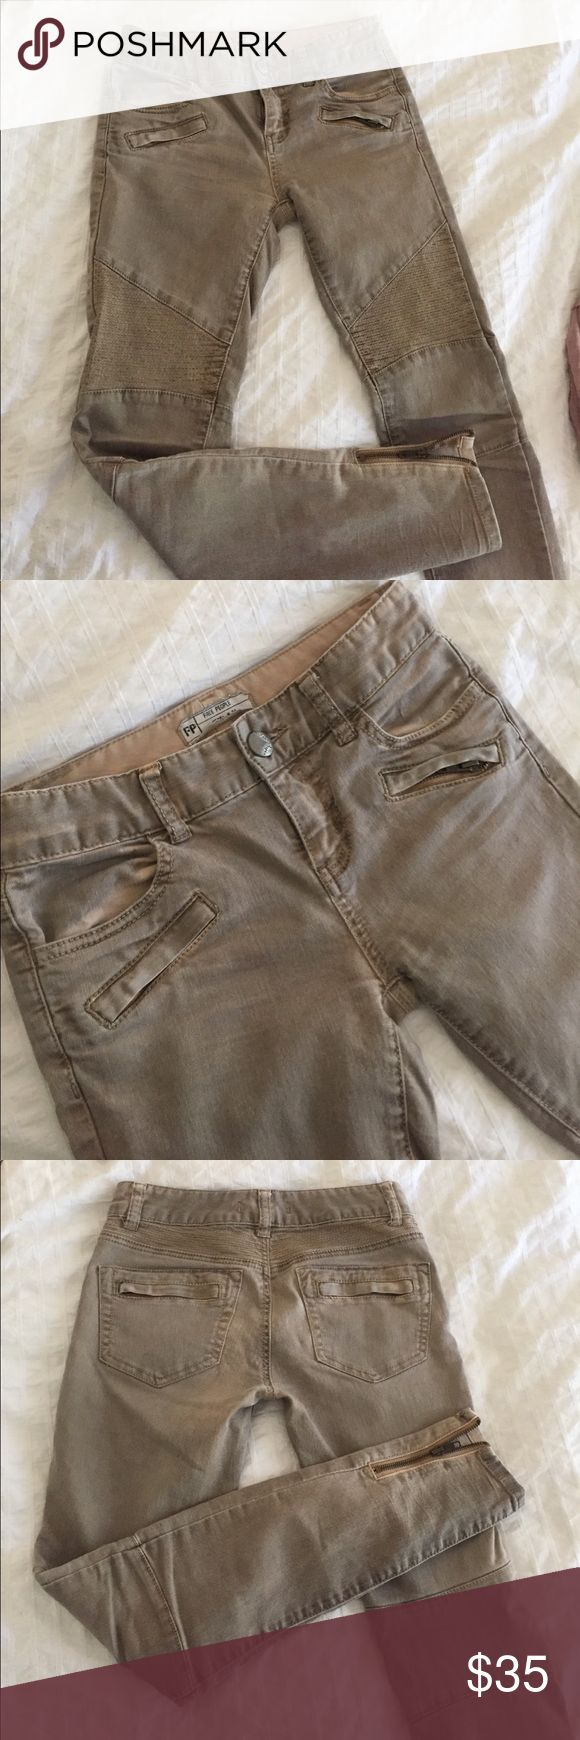 Free People moto khaki jeans-- size 24 Free People khaki jeans. Moto style. Ankle length. Low rise. Ankle zippers. Cute details. Size 24. 76% cotton, 20% polyester, 2% spandex. Free People Jeans Ankle & Cropped